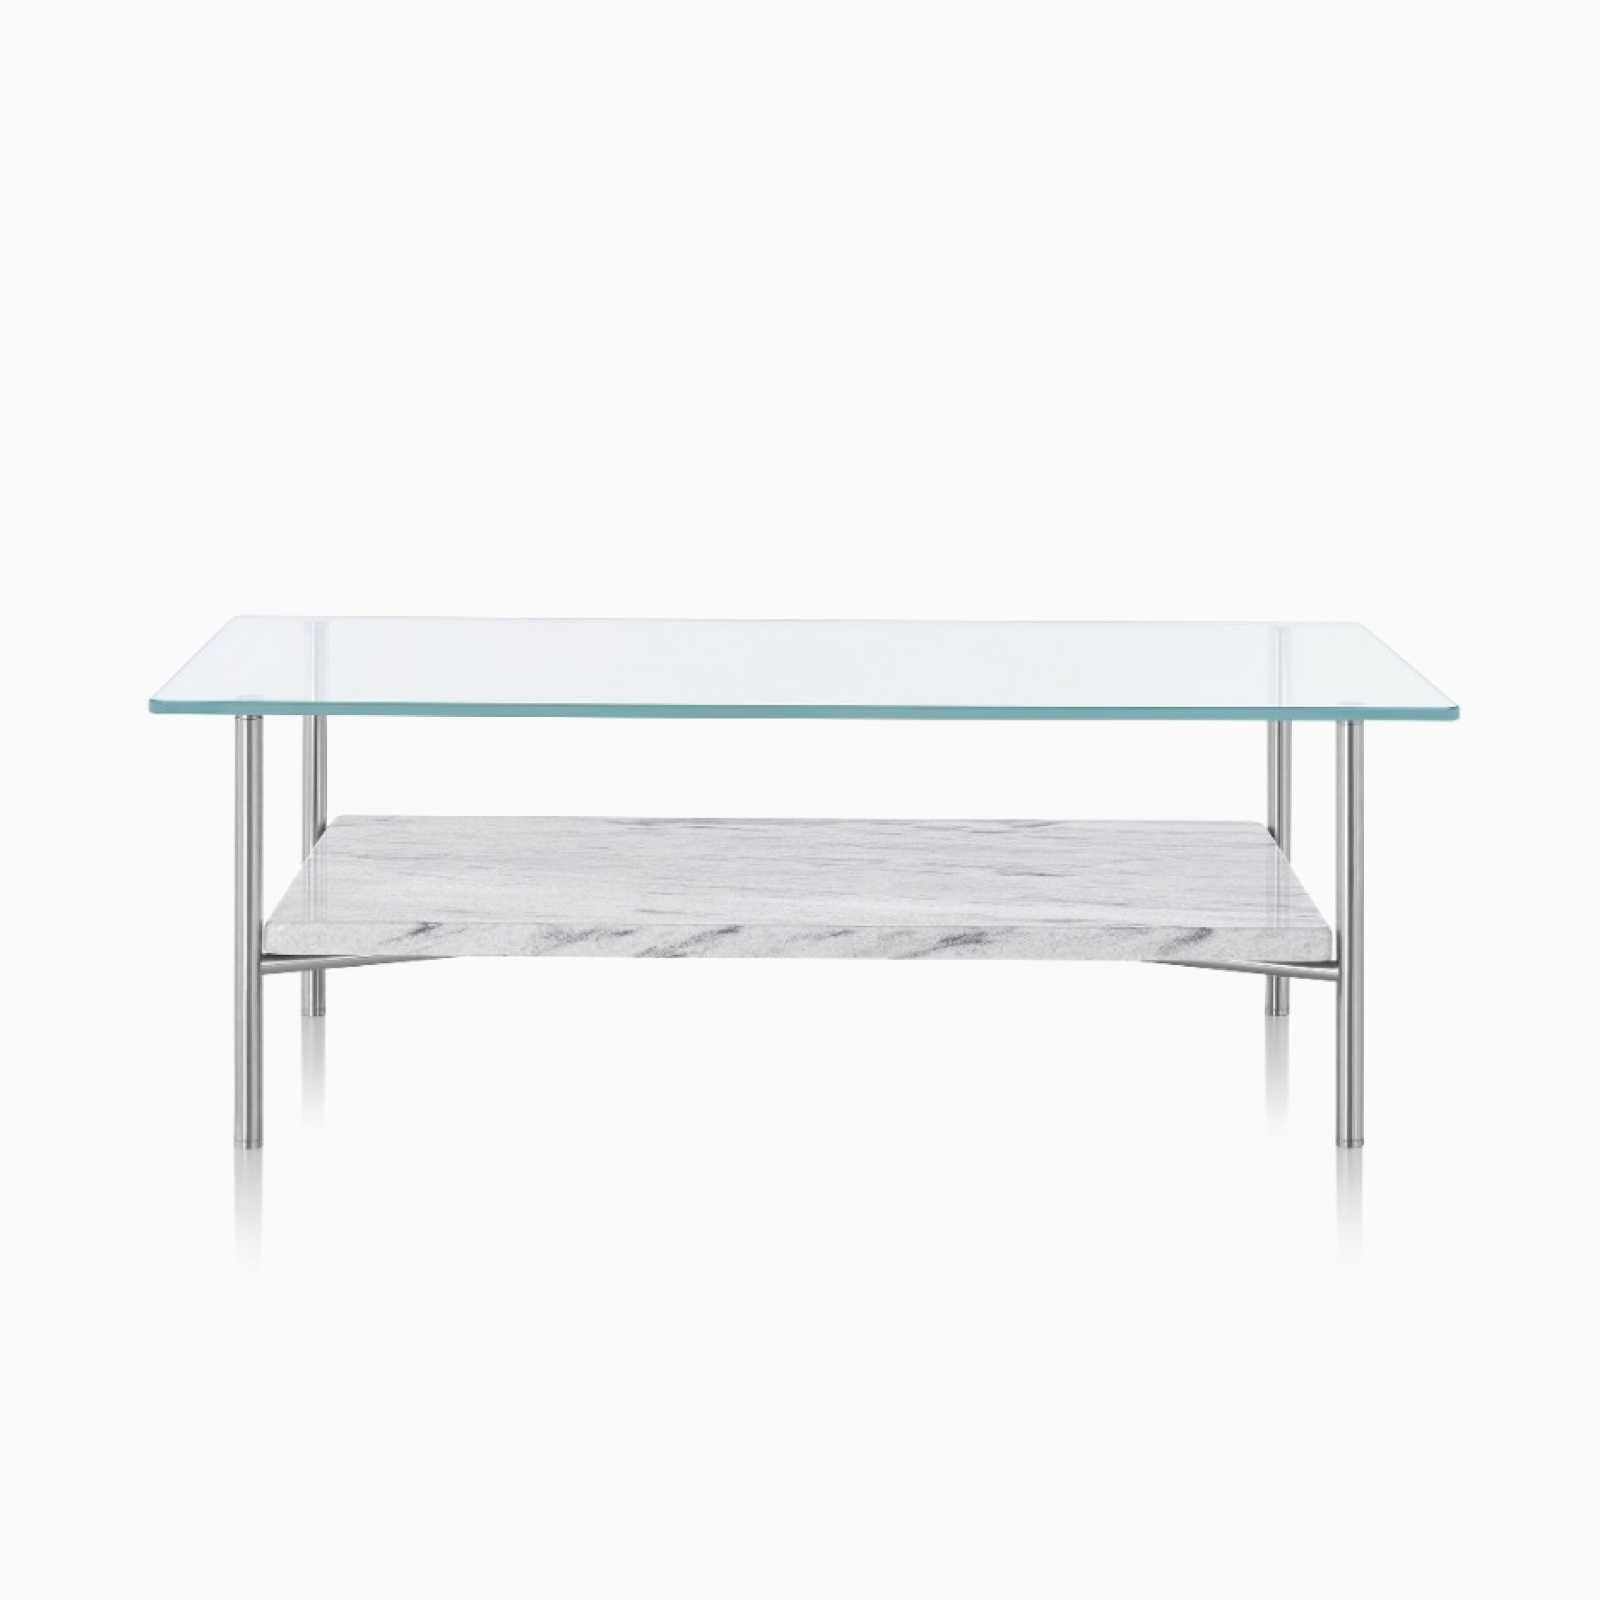 A rectangular Layer occasional table with a glass top and stone lower shelf.